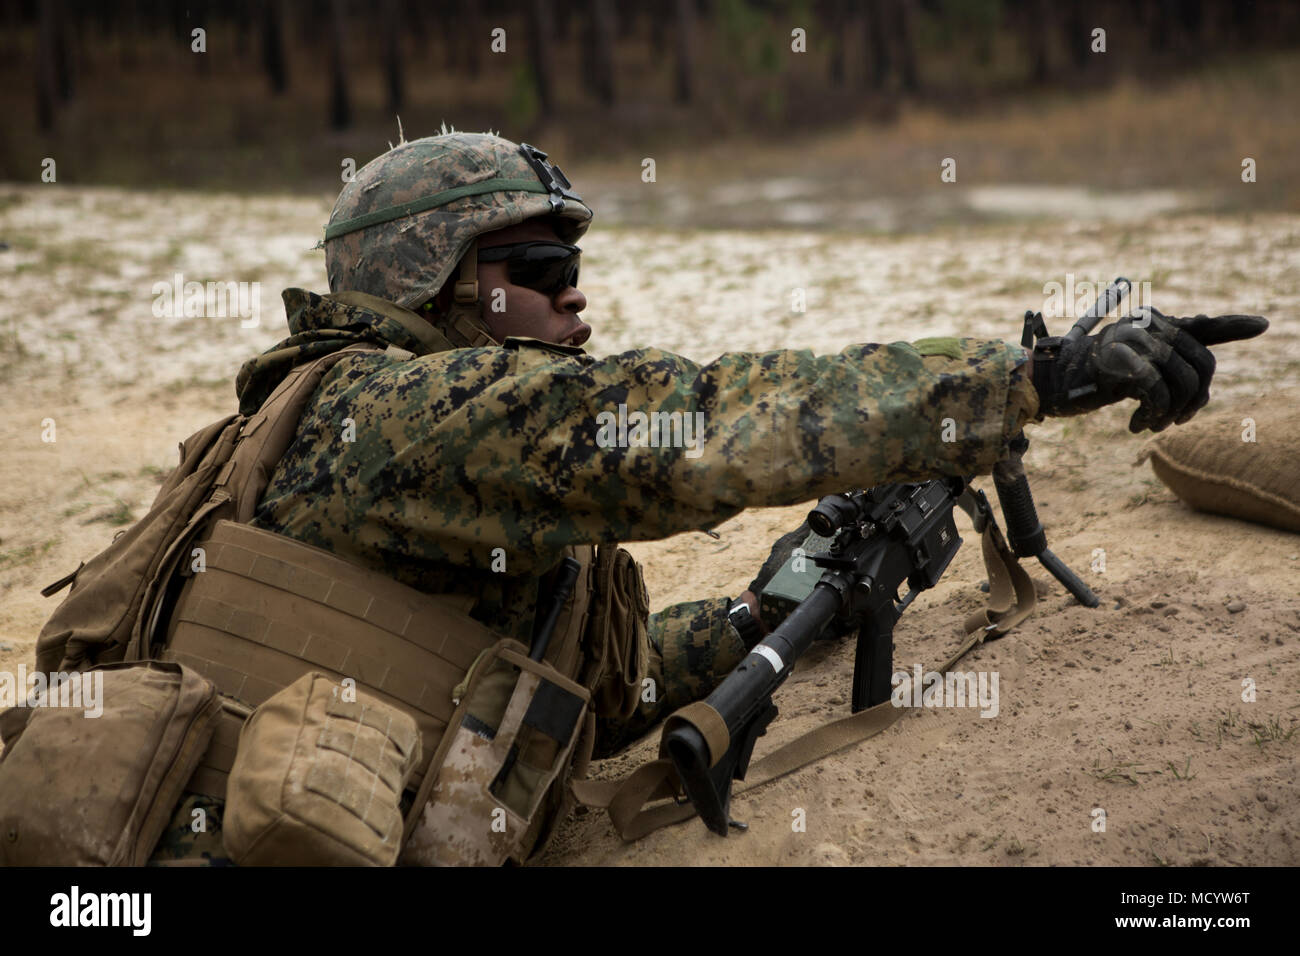 A U.S. Marine with Company L, 3rd Battalion, 2nd Marine Regiment, 2nd Marine Division, shouts out commands during a live fire platoon attack on the new G29 on Camp Lejeune, N.C., March 6, 2018. 2nd Marine Division provided funding and material for the creation of G-29, then used 2nd Combat Engineer Battalion equipment and operators to finalize the production of the range. (U.S. Marine Corps photo by Pfc. Nathaniel Hamilton) - Stock Image